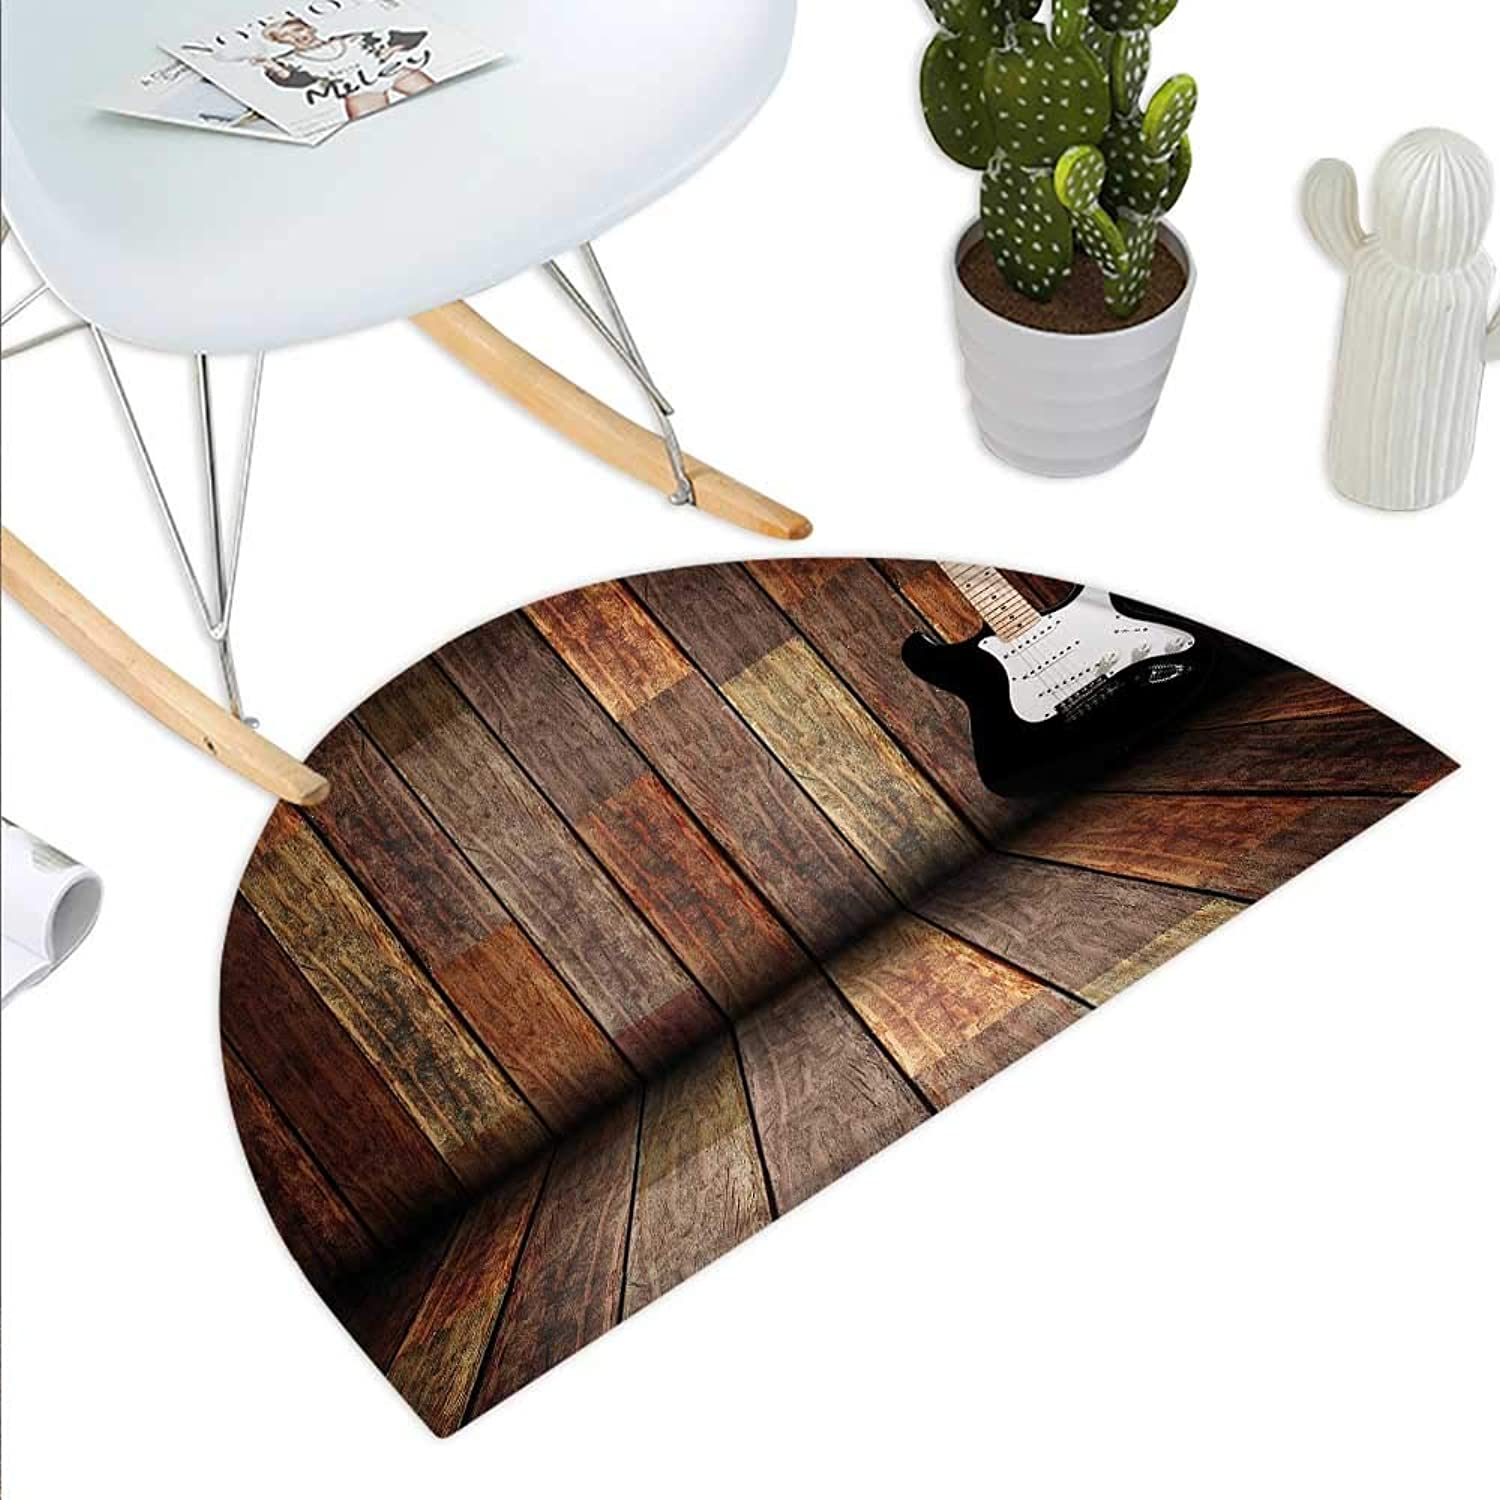 Popstar Party Semicircle Doormat Electric Guitar in The Wooden Room Country House Interior Music Theme Halfmoon doormats H 39.3  xD 59  Brown Black White